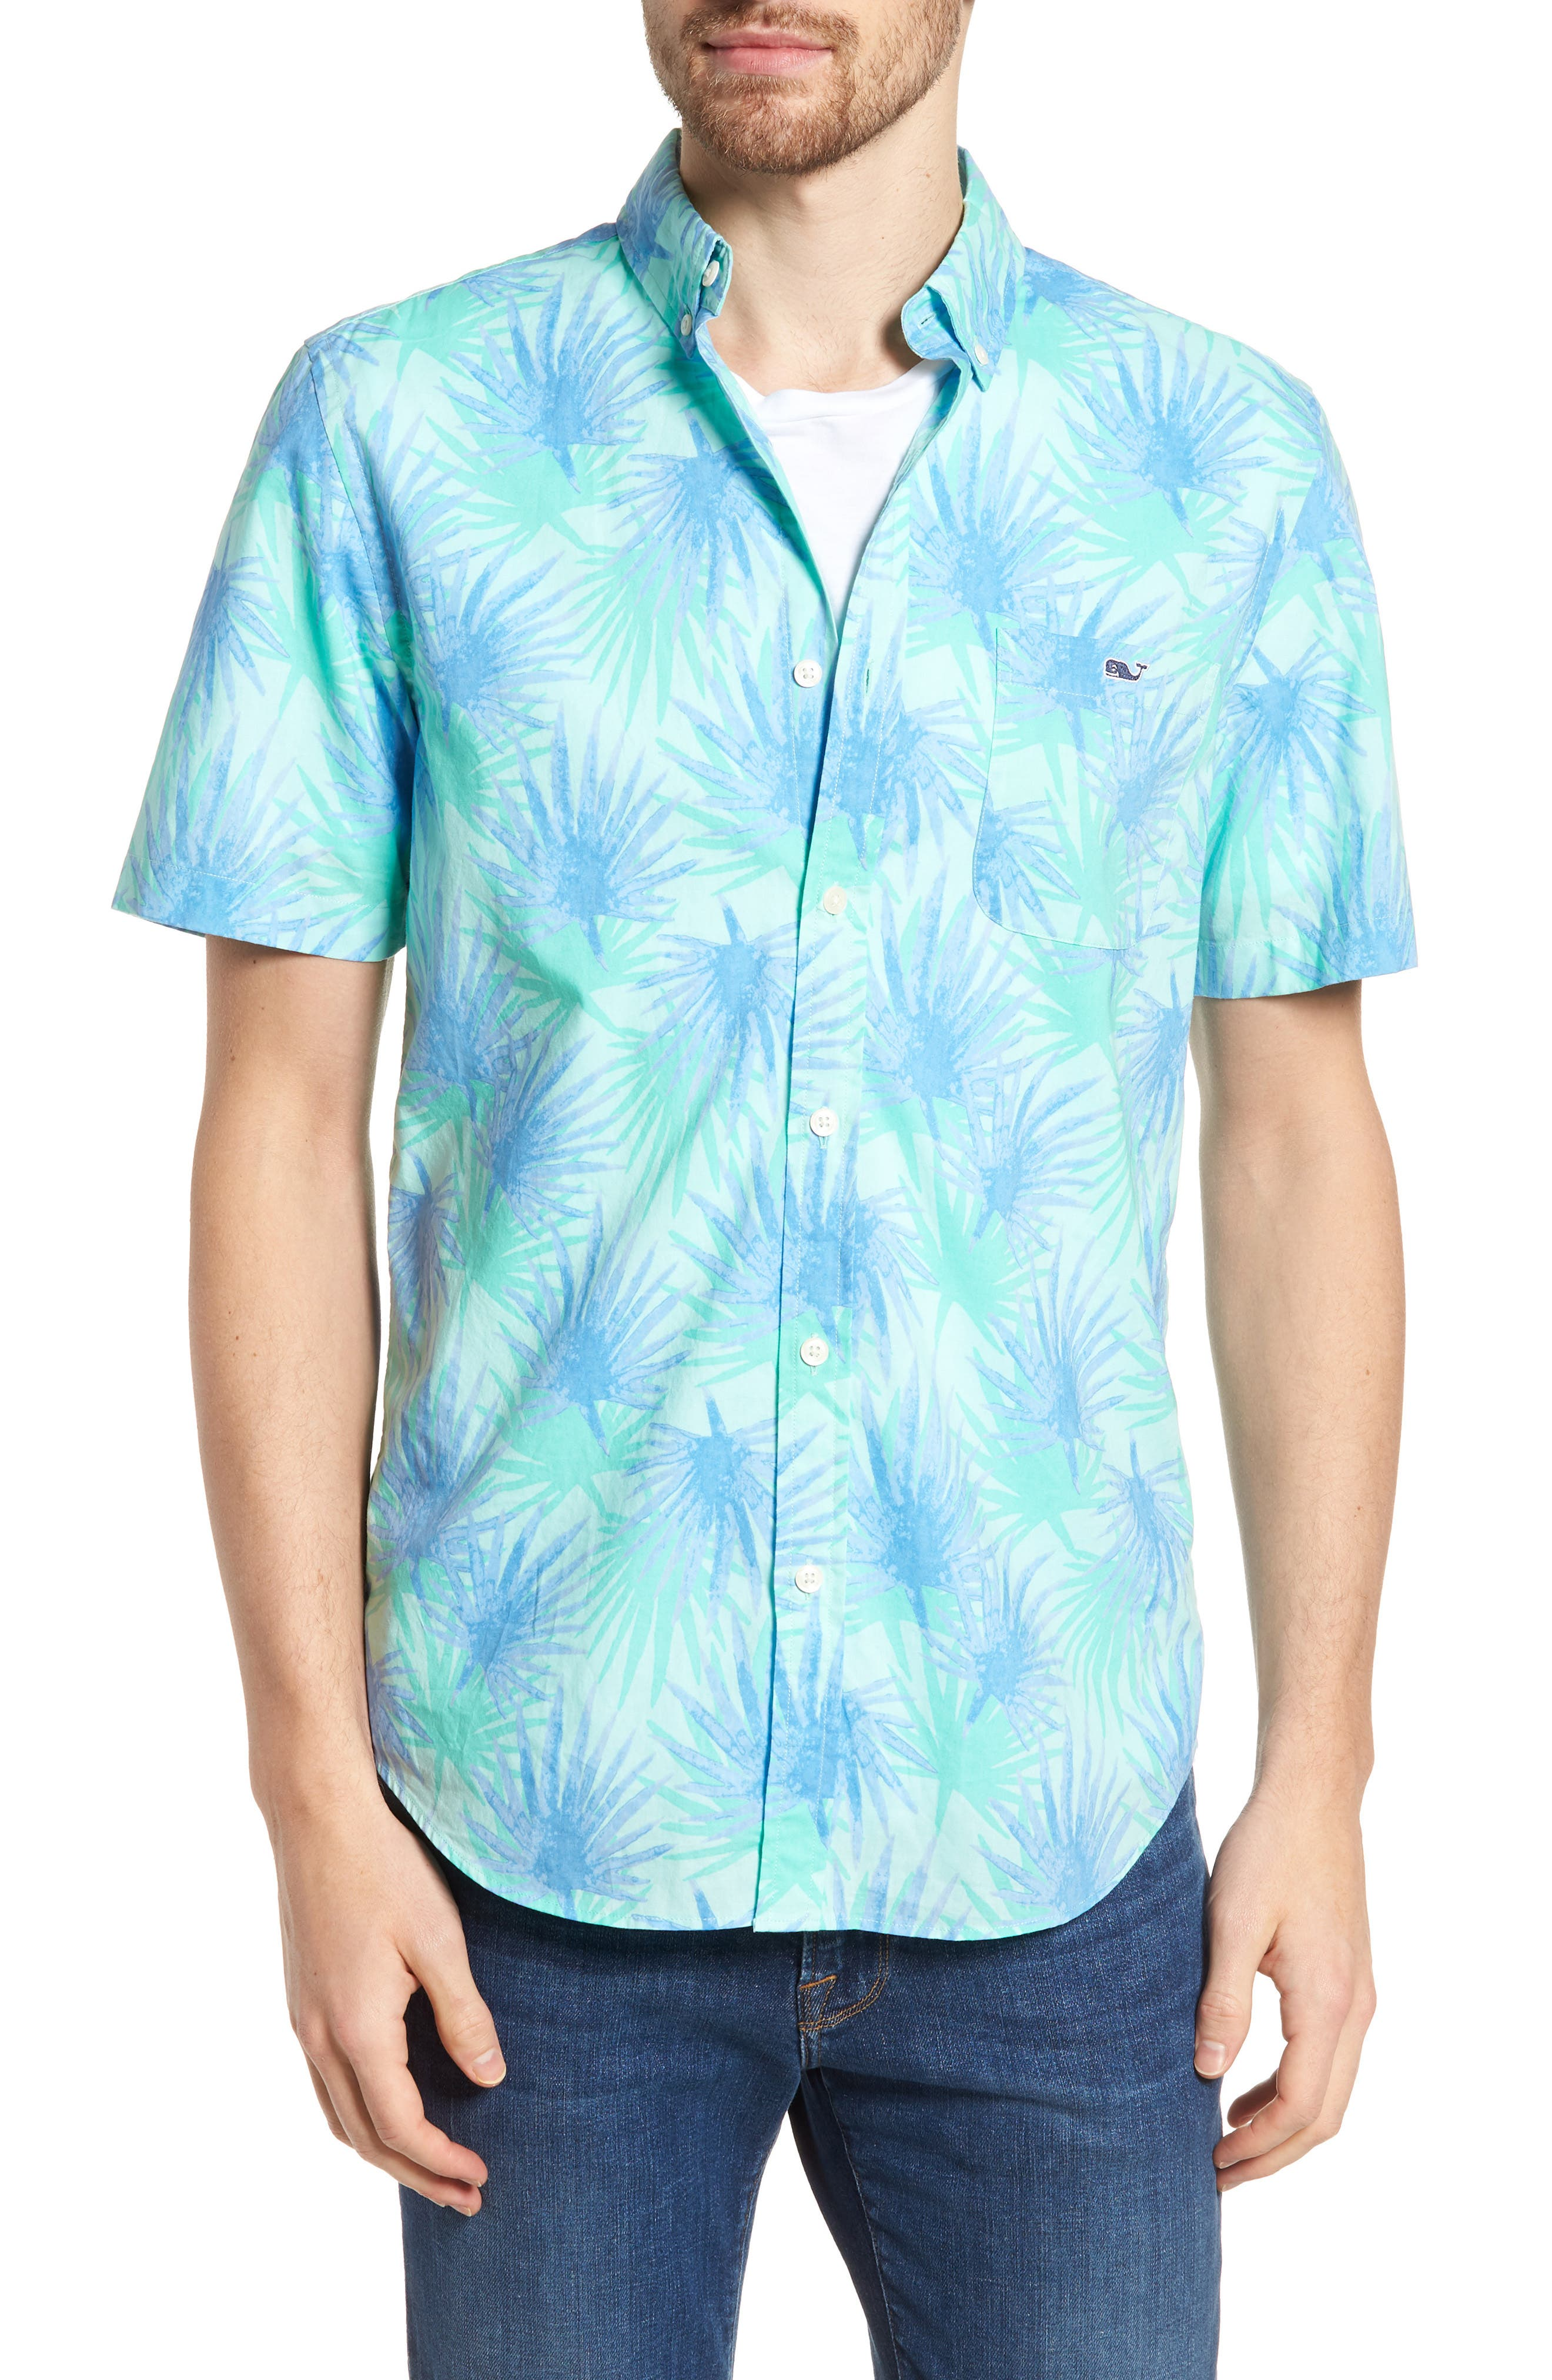 Electric Palm Slim Fit Print Short Sleeve Sport Shirt,                             Main thumbnail 1, color,                             400